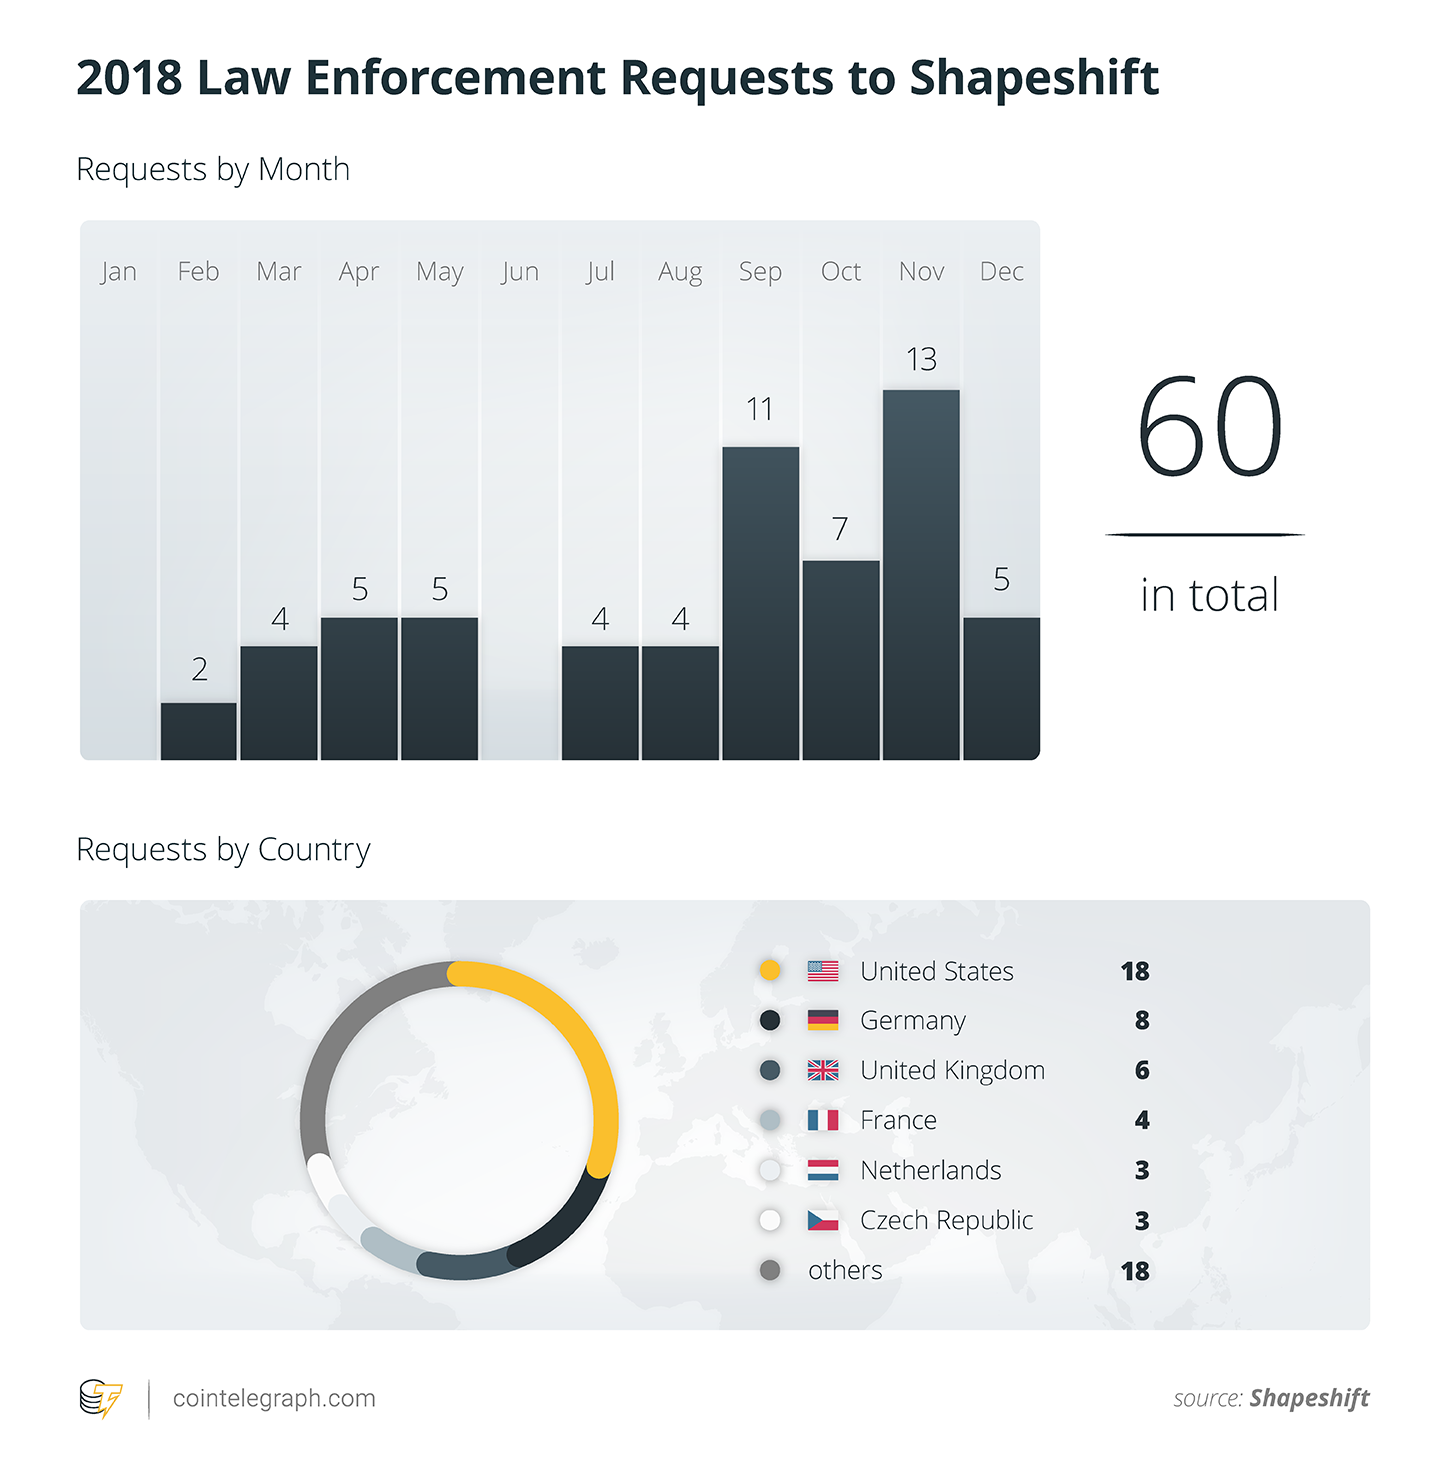 2018 law enforcement requests sent to ShapeShift